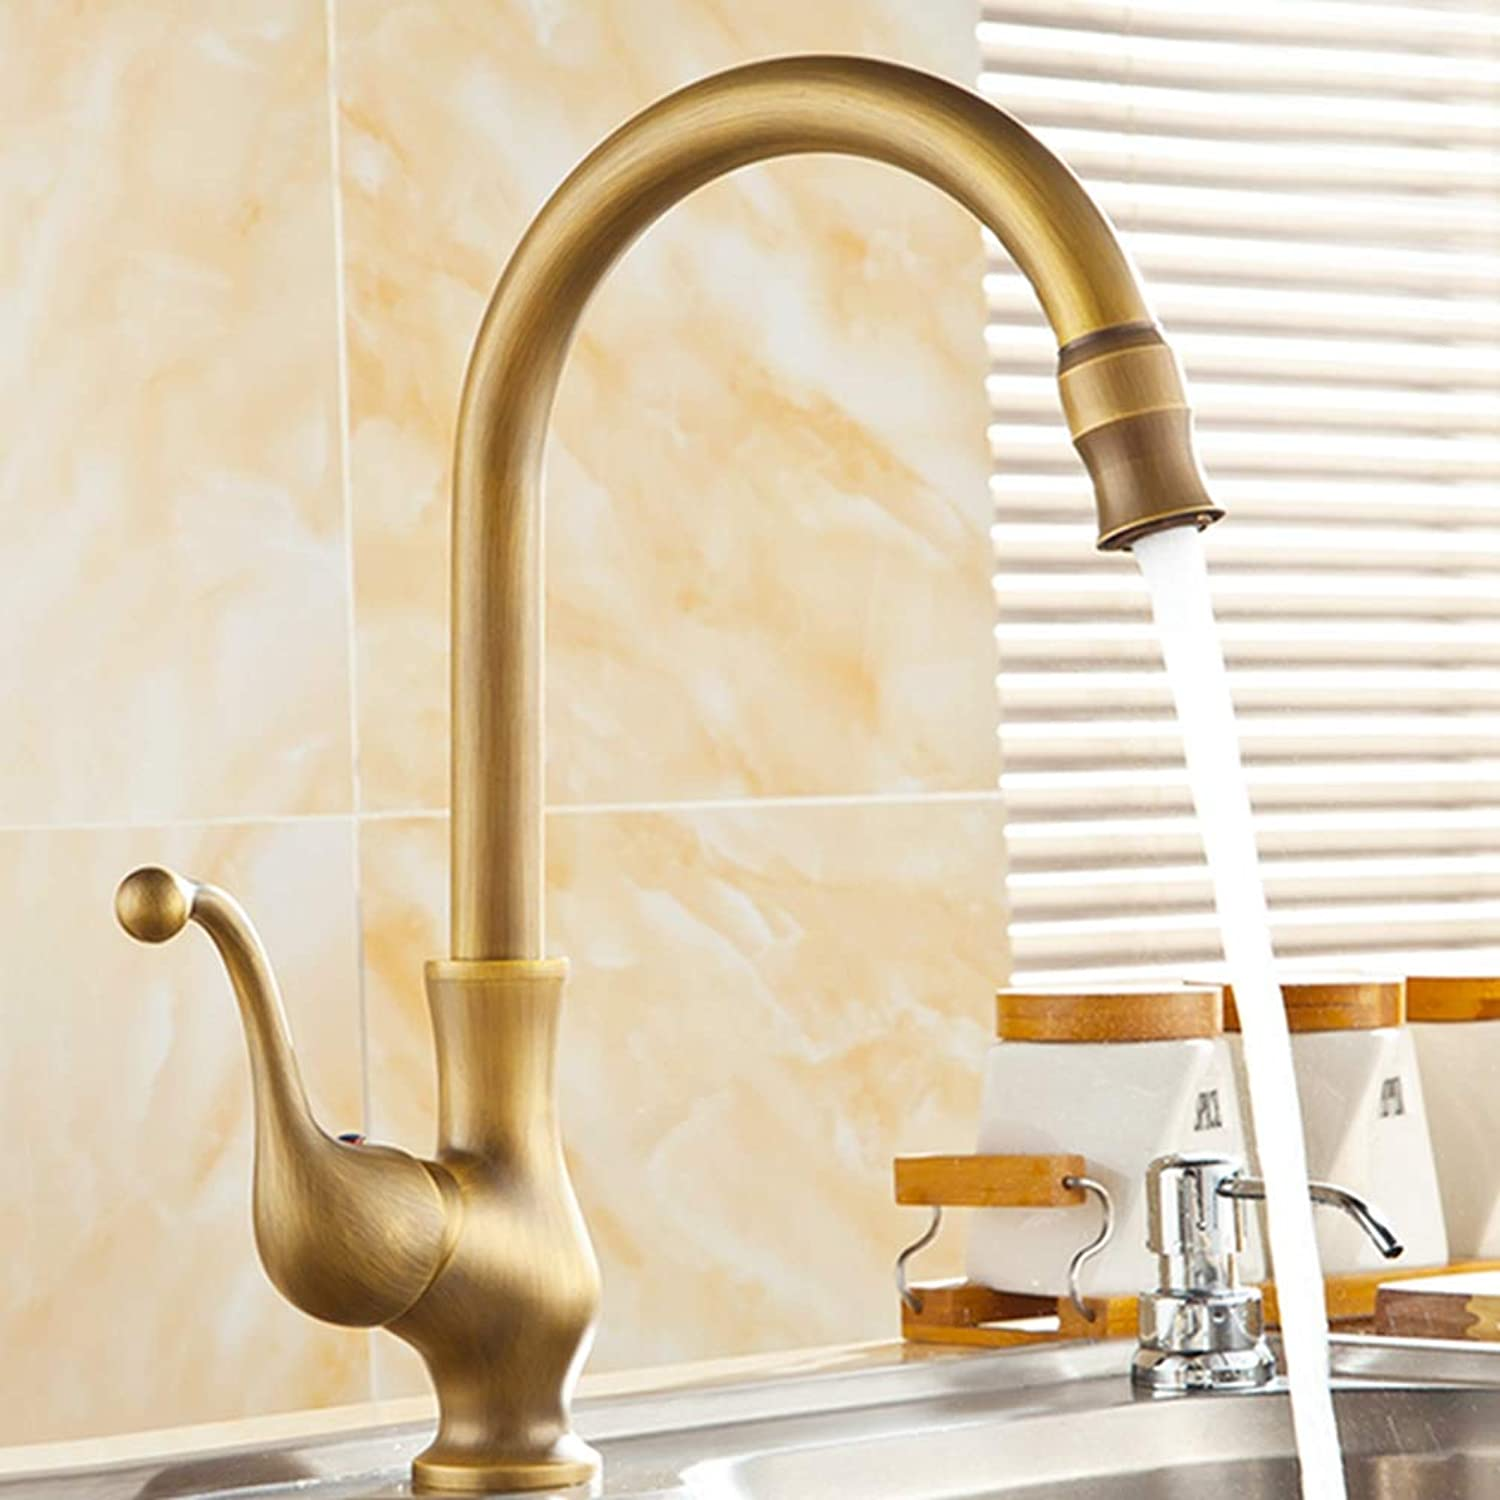 FZHLR Kitchen Sink Faucet Antique Brass 360 Degree redation Single Handle Mixer Tap Kitchen Faucet Deck Mounted Hot and Cold Water Mixer Tap,Antique Brass A